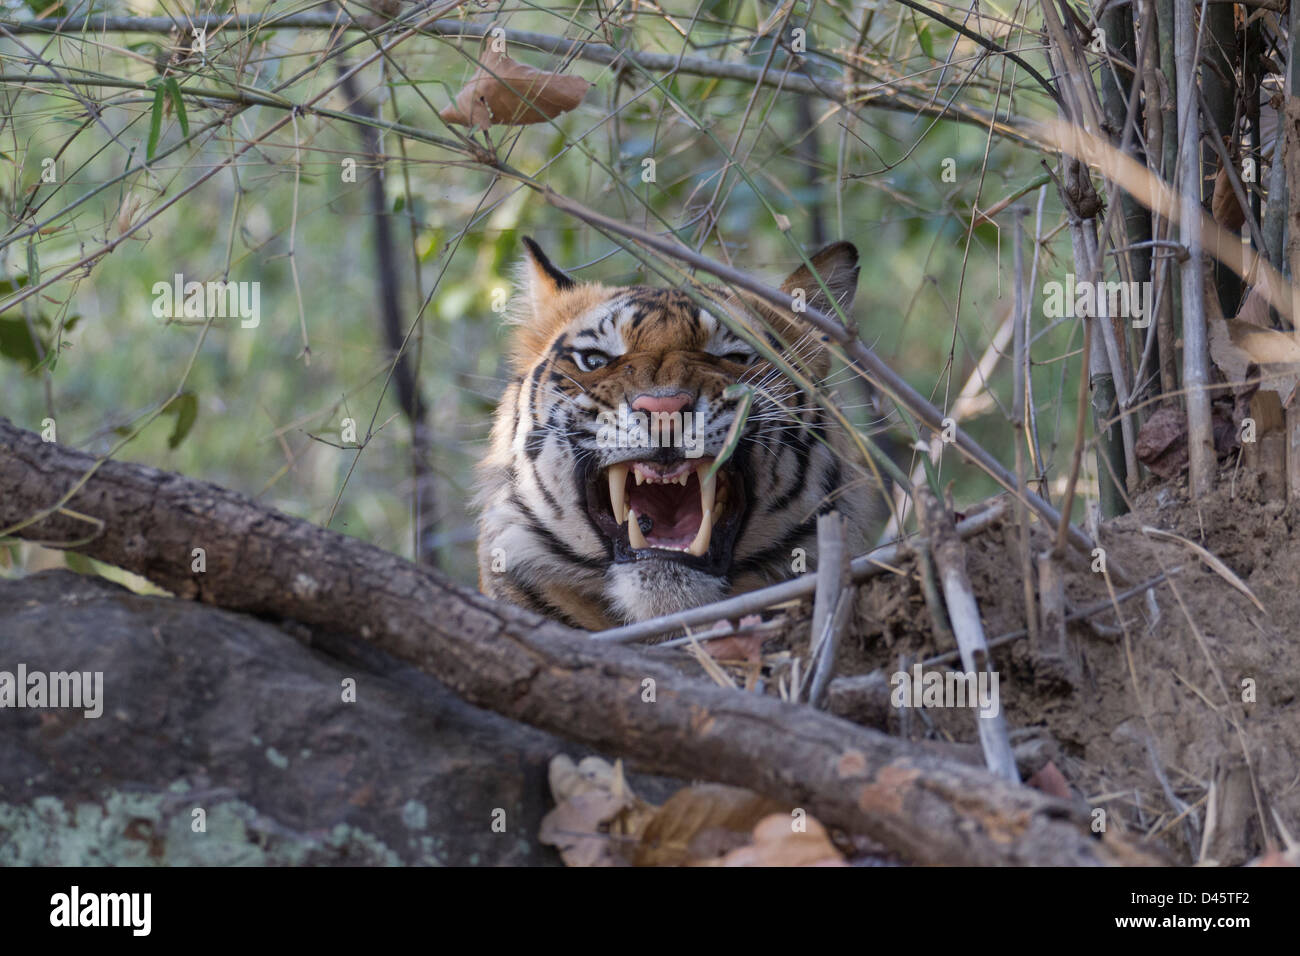 A snarling Wild Tiger from Bandhavgarh National Park, India - Stock Image